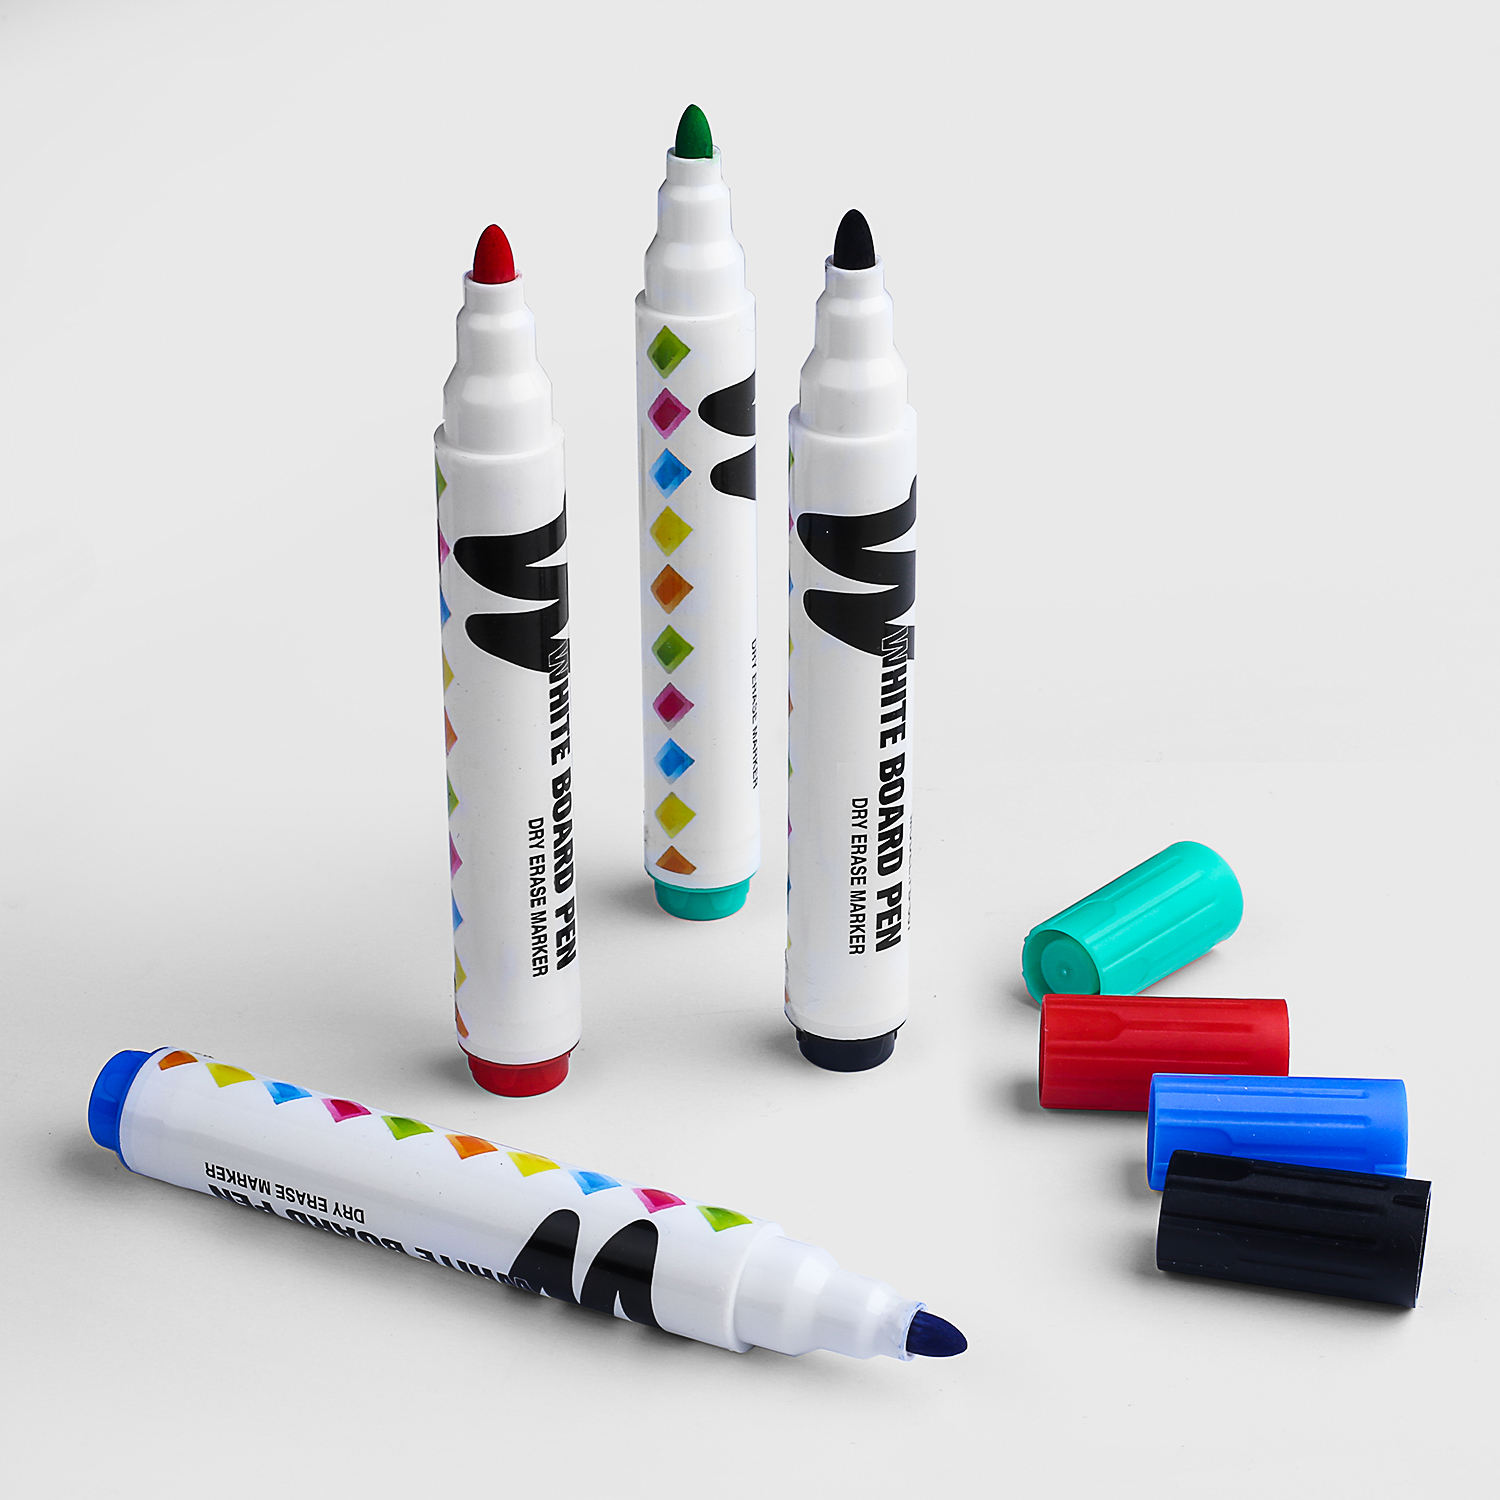 2020 New Design Dry Erase Markers Fine Tip Assorted Colors Refillable Whiteboard Marker Pen Set